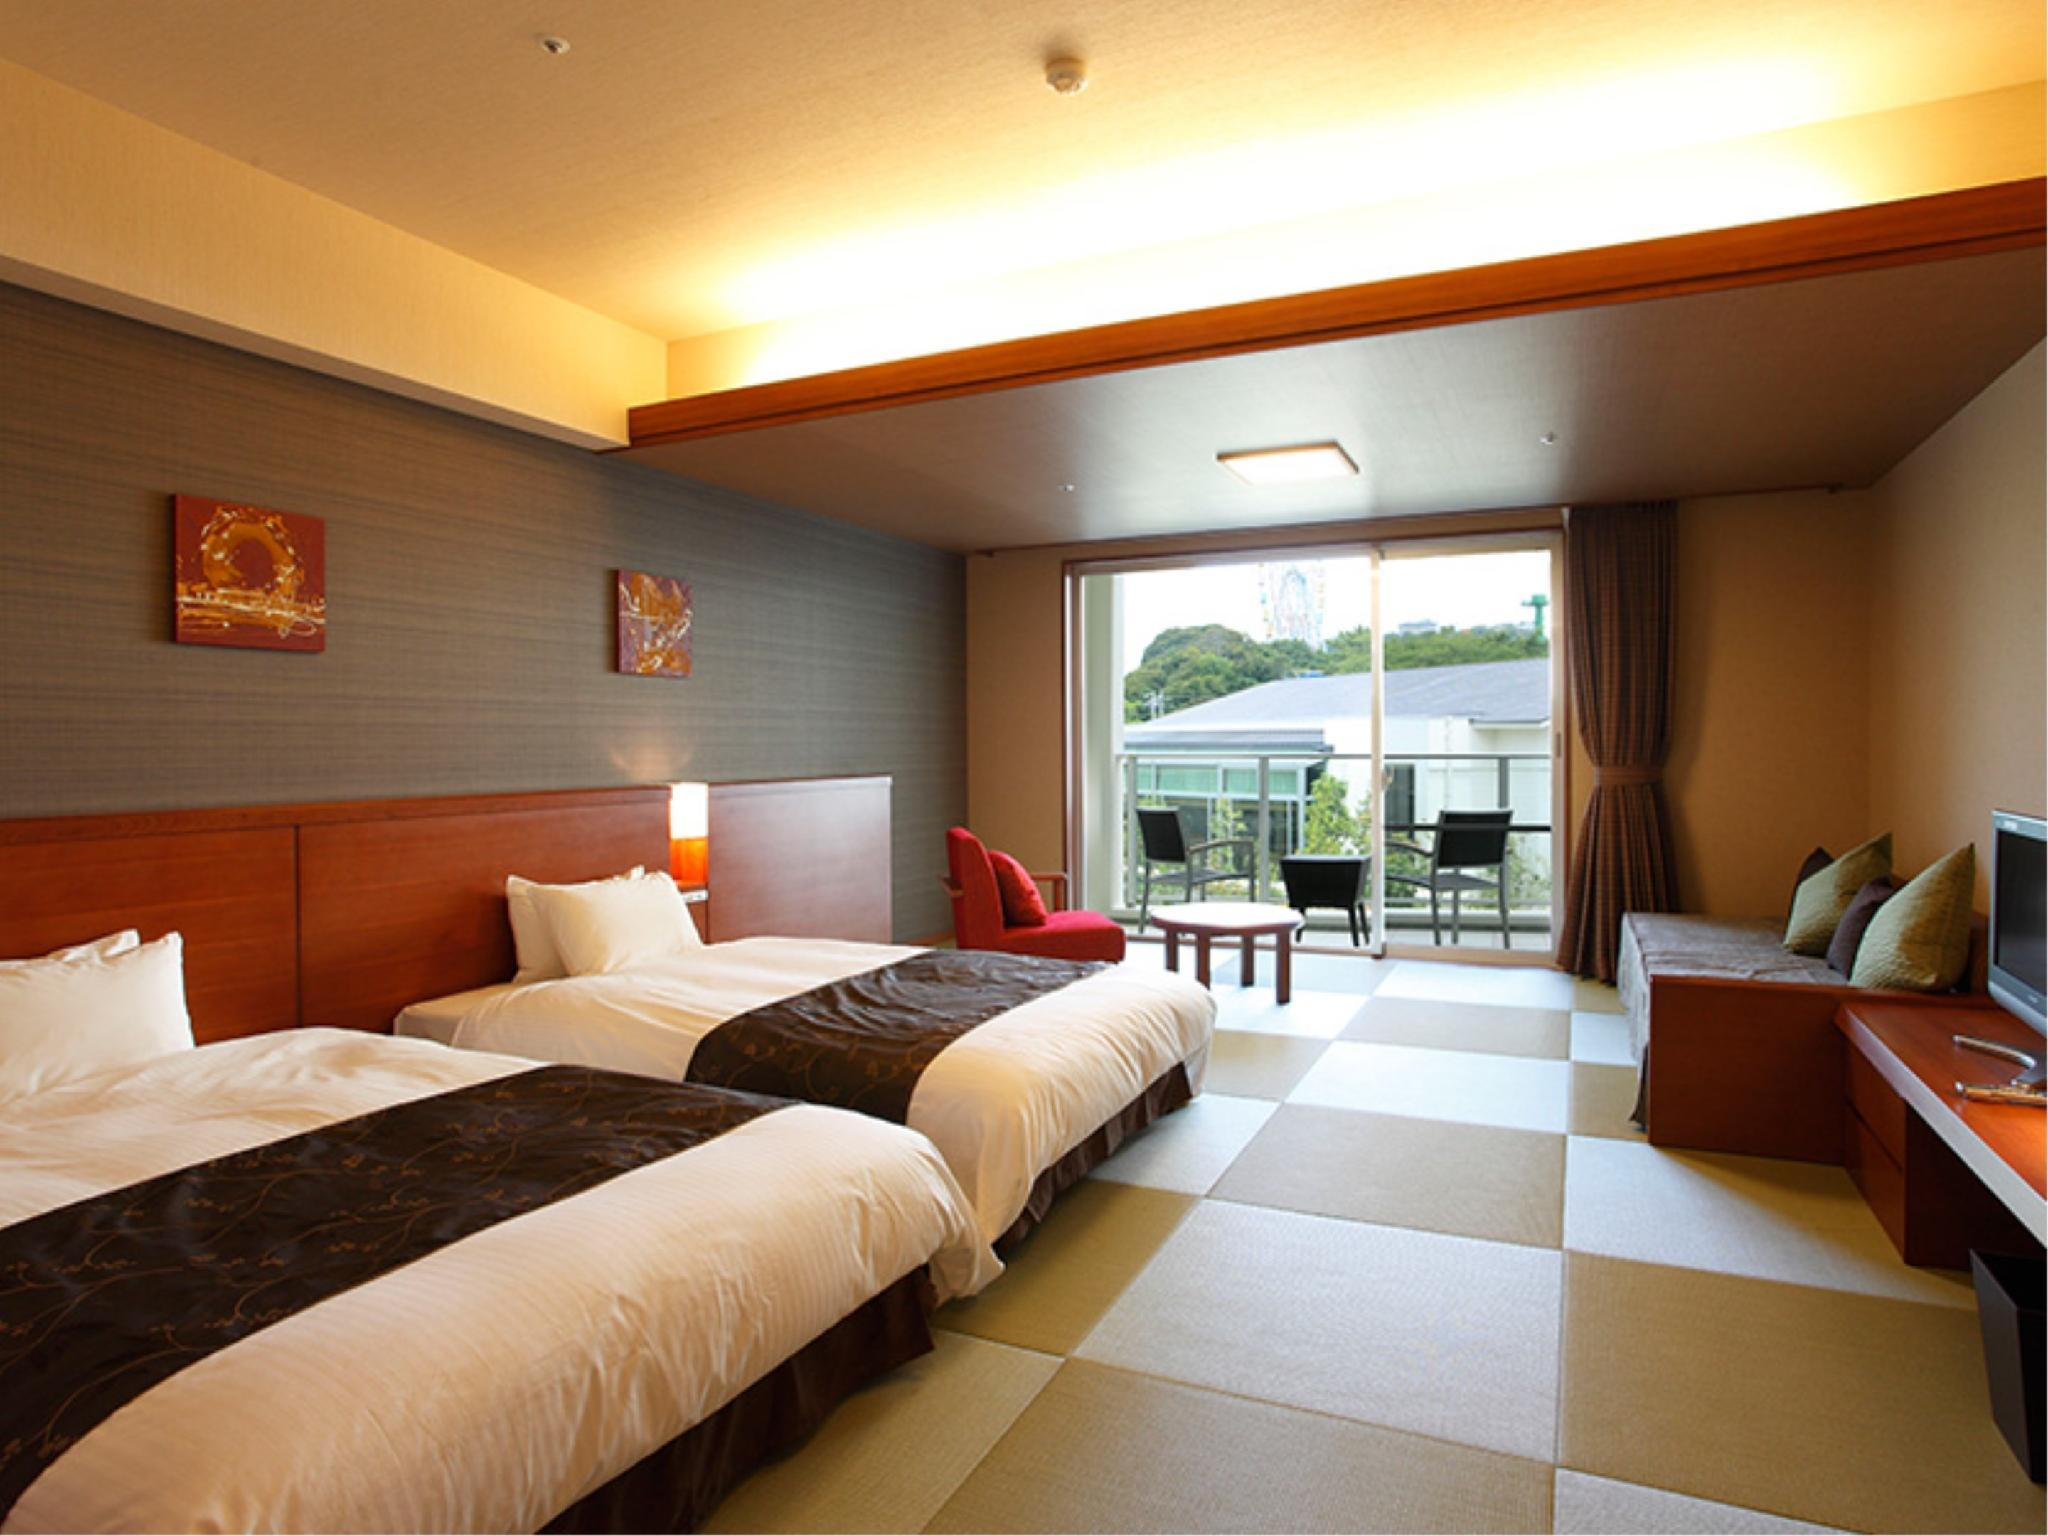 Modern Japanese-style Room (2 Japanese Beds, Garden Court Wing)